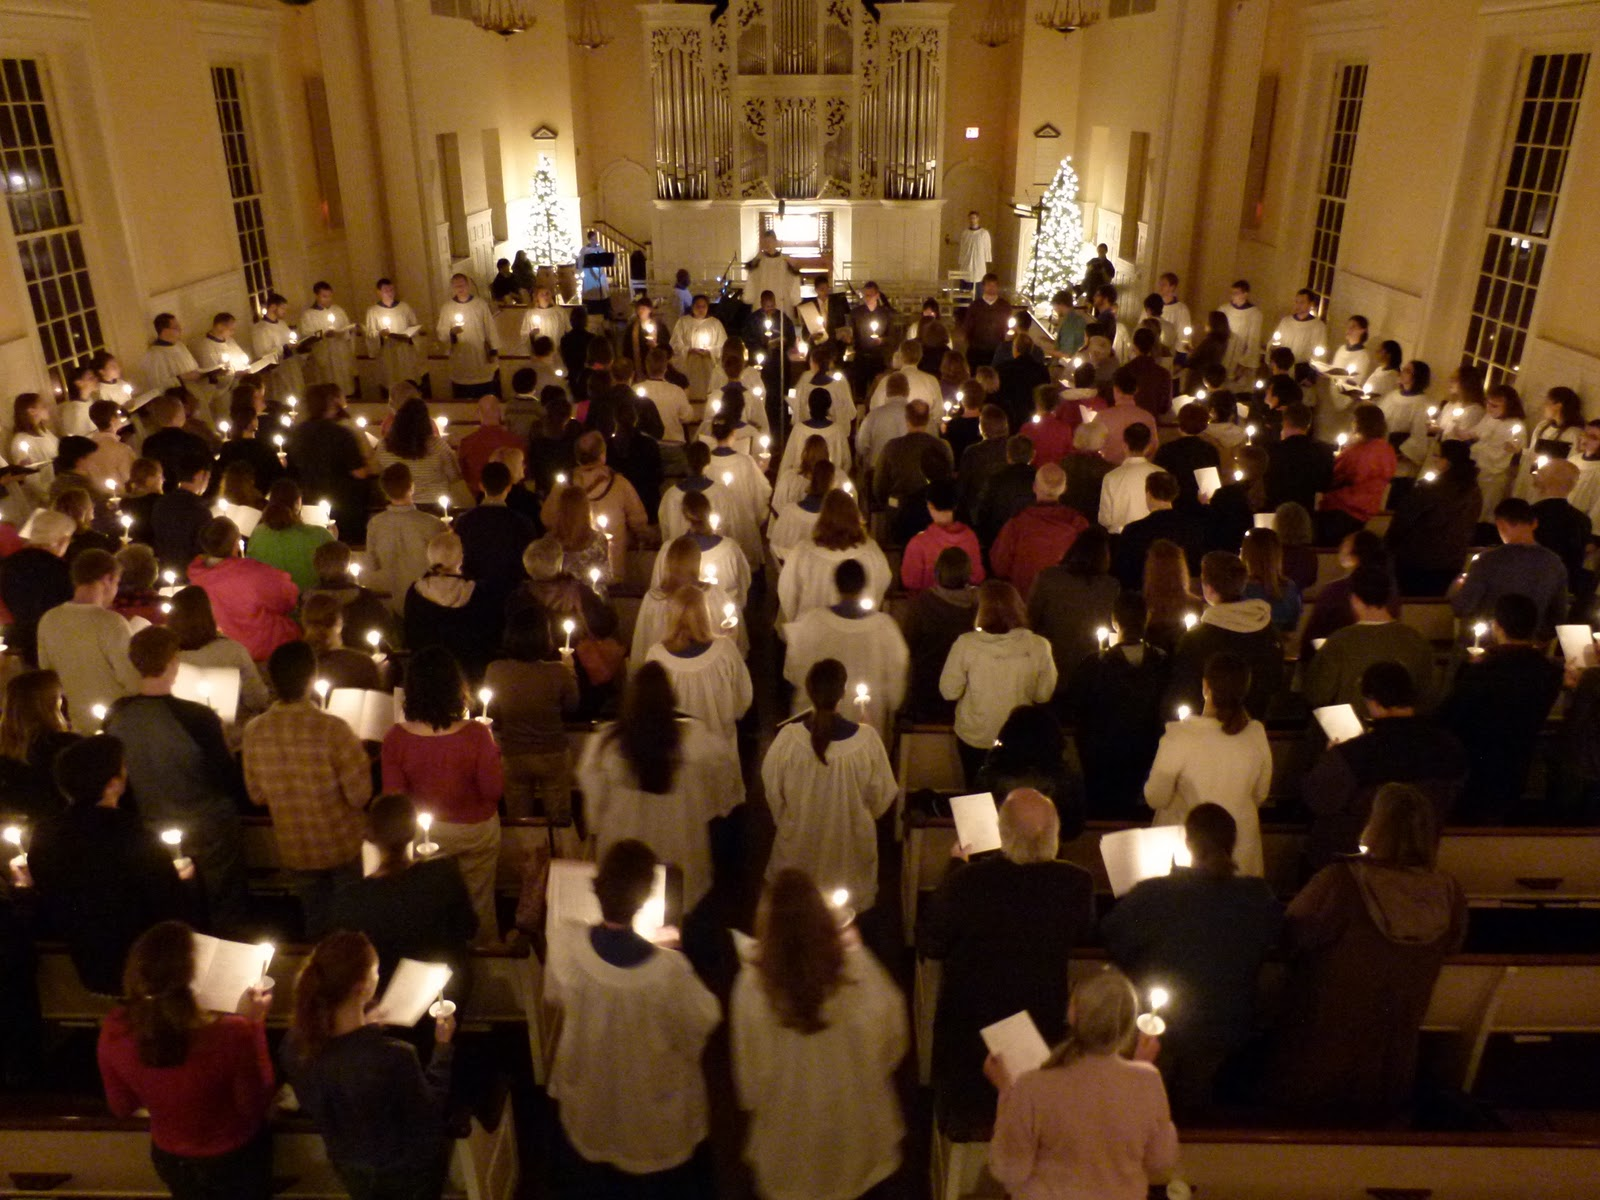 Christmas Church Services Near Me.Pillsbury Press Christmas Church Services